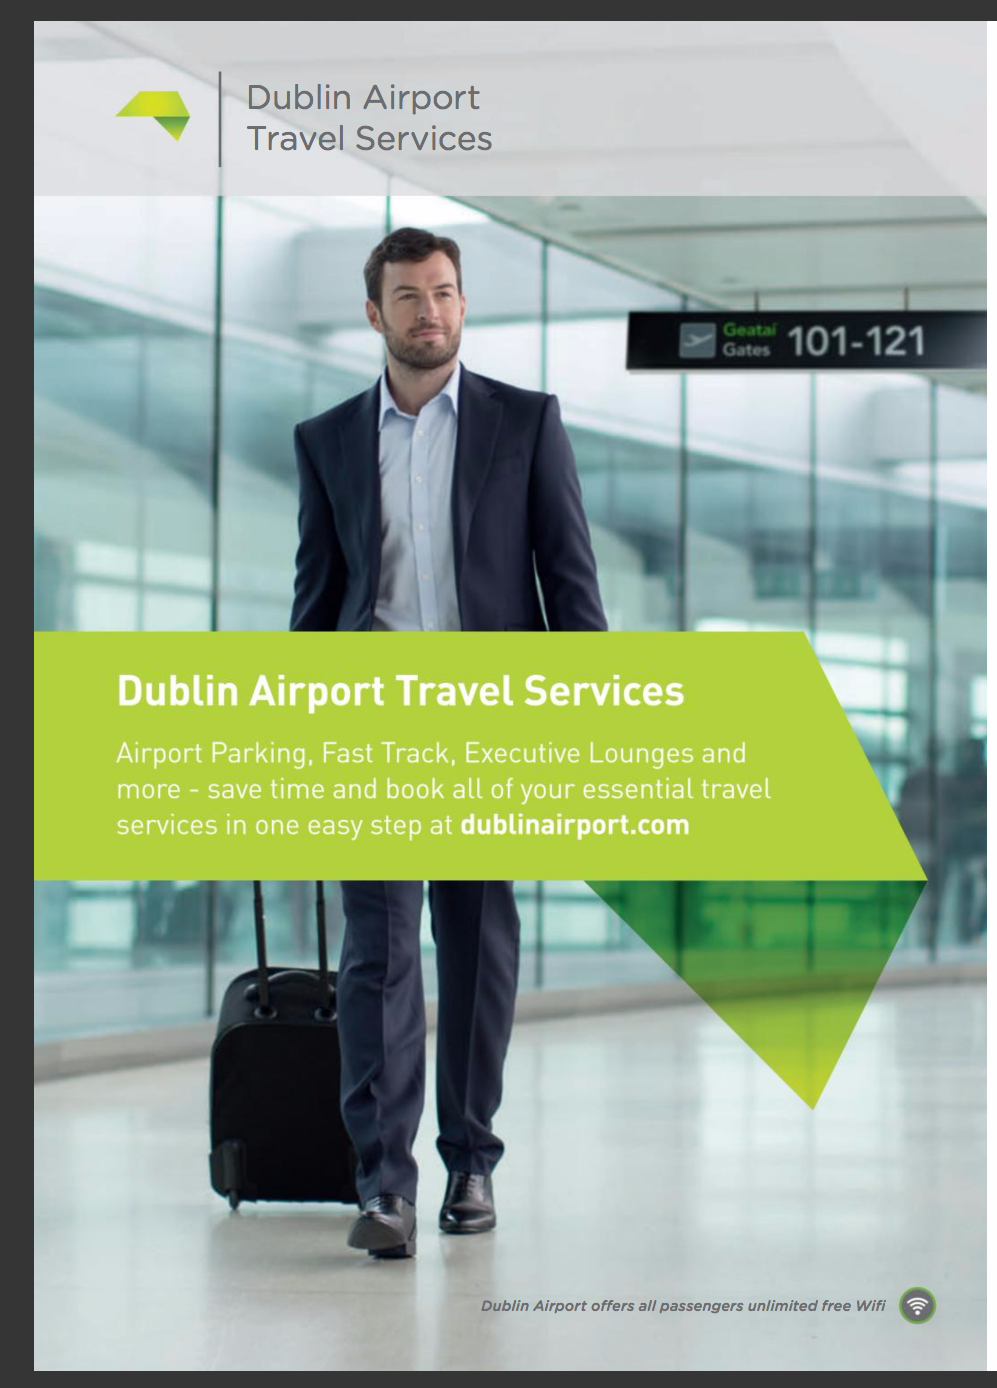 Dublin Airport Travel Servics